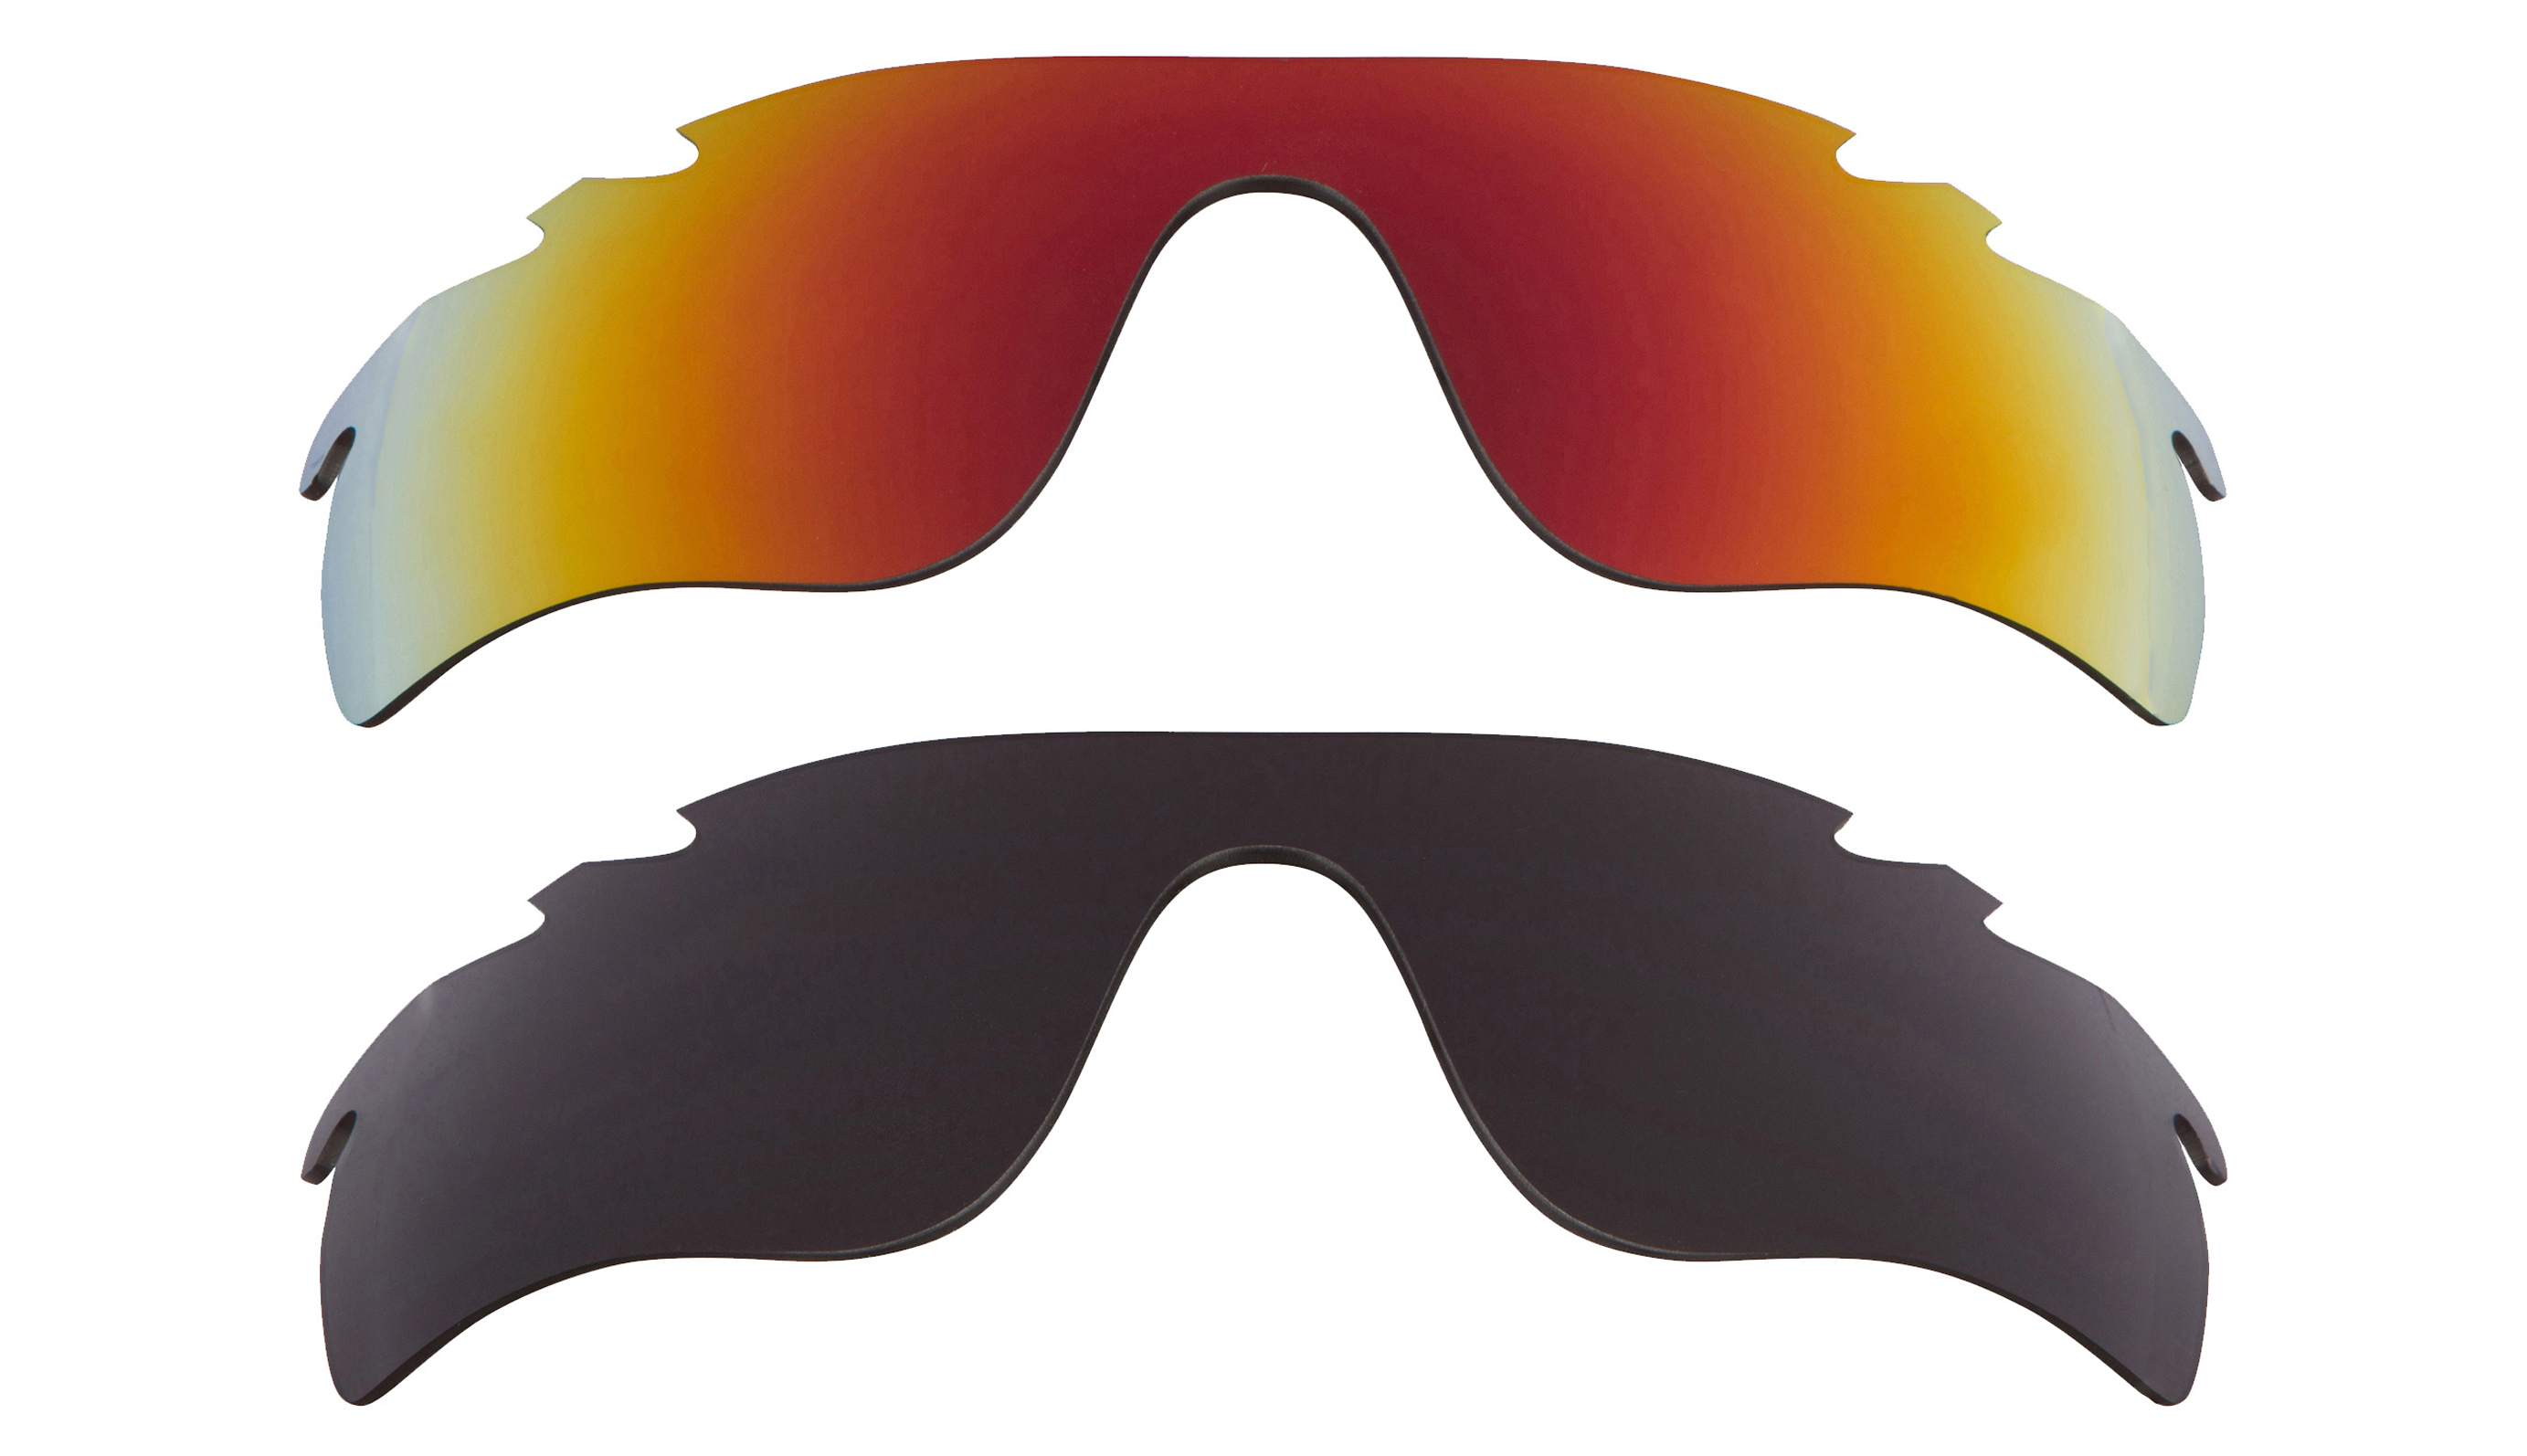 bfb10cc437 Details about Vented Radarlock Path Replacement Lenses Black   Ruby Red by SEEK  fits OAKLEY